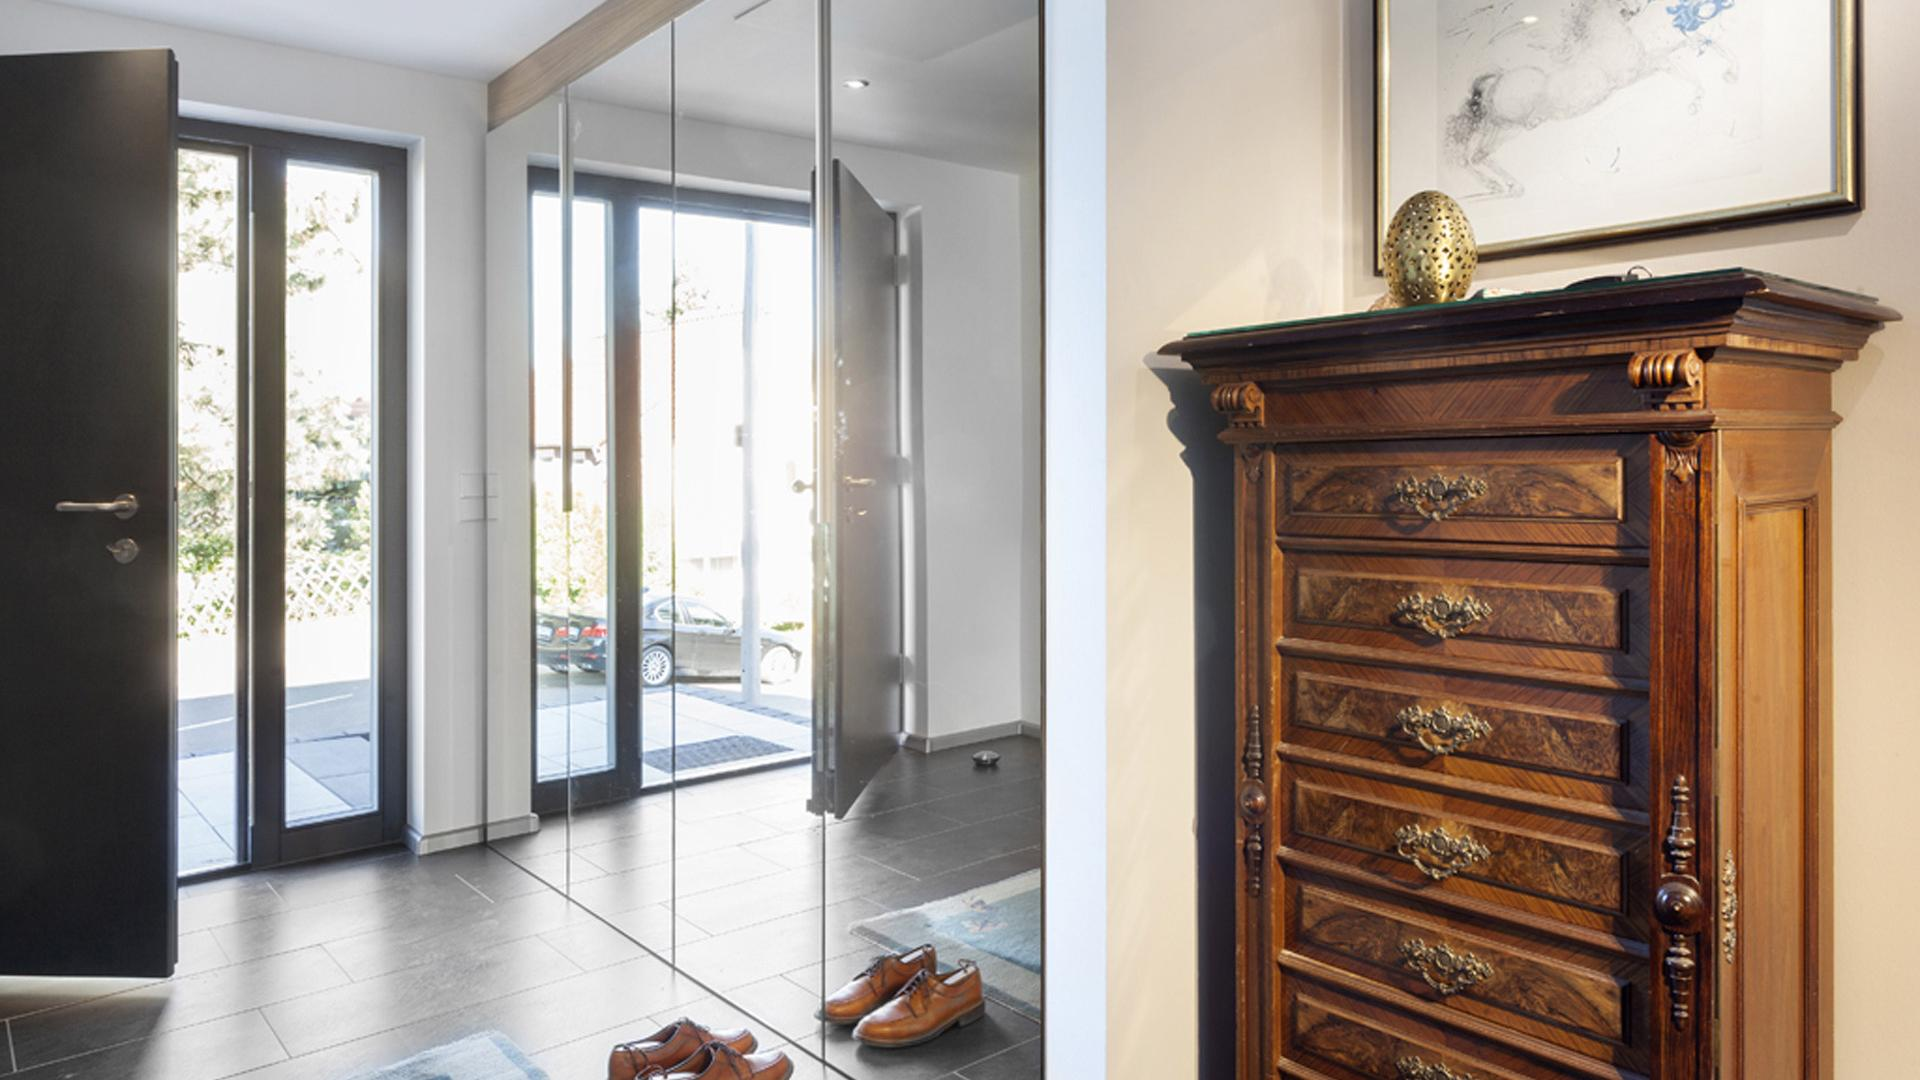 House entrance with large mirrored wardrobe